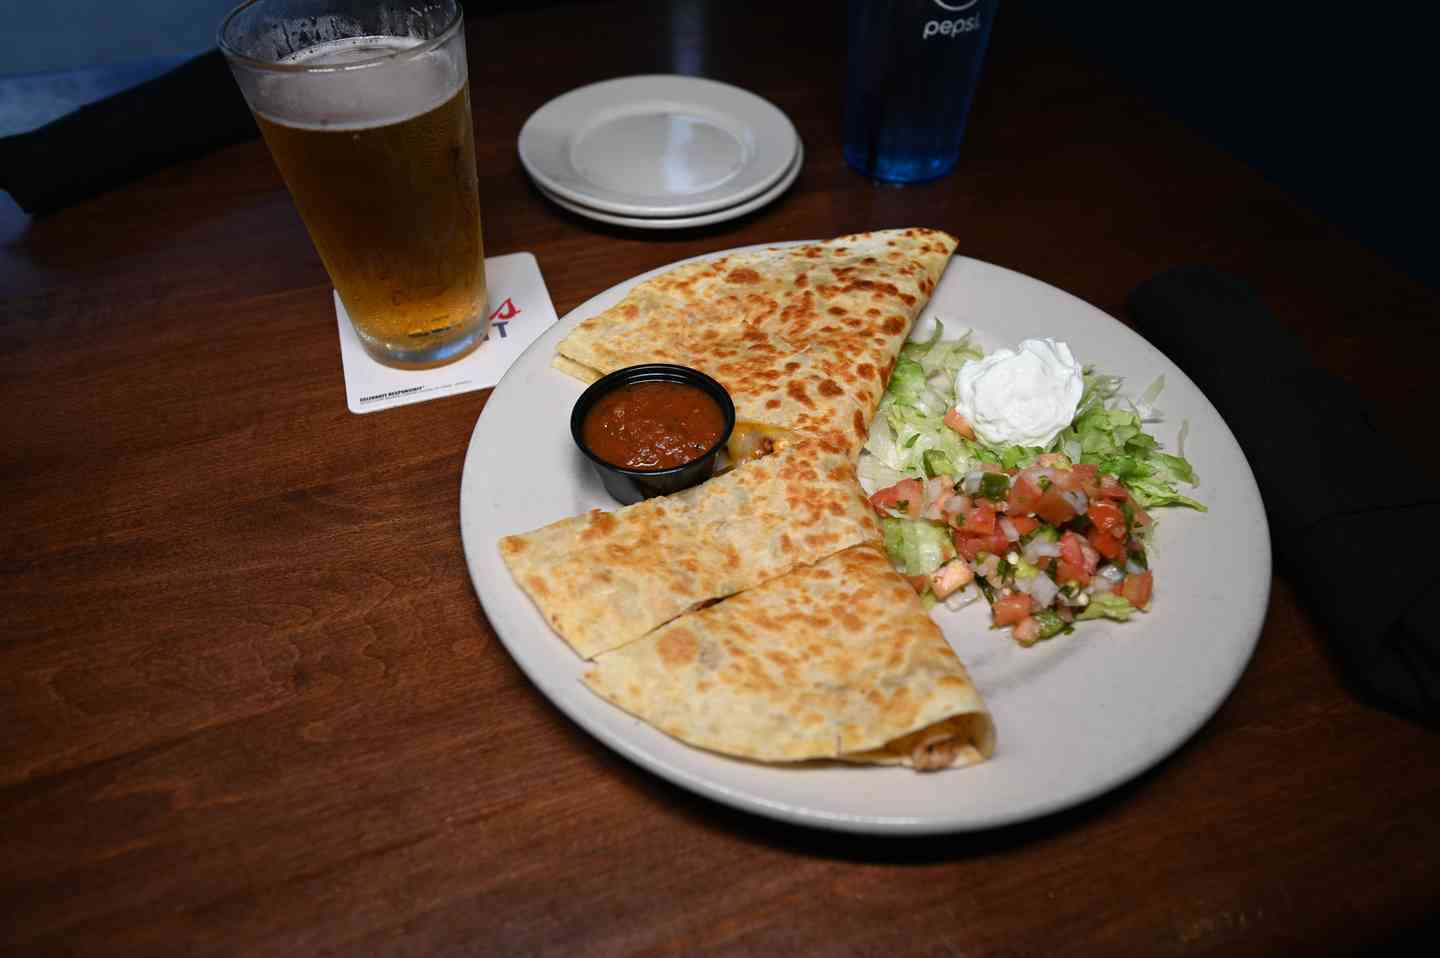 The Wild Pitch Chicken Quesadilla